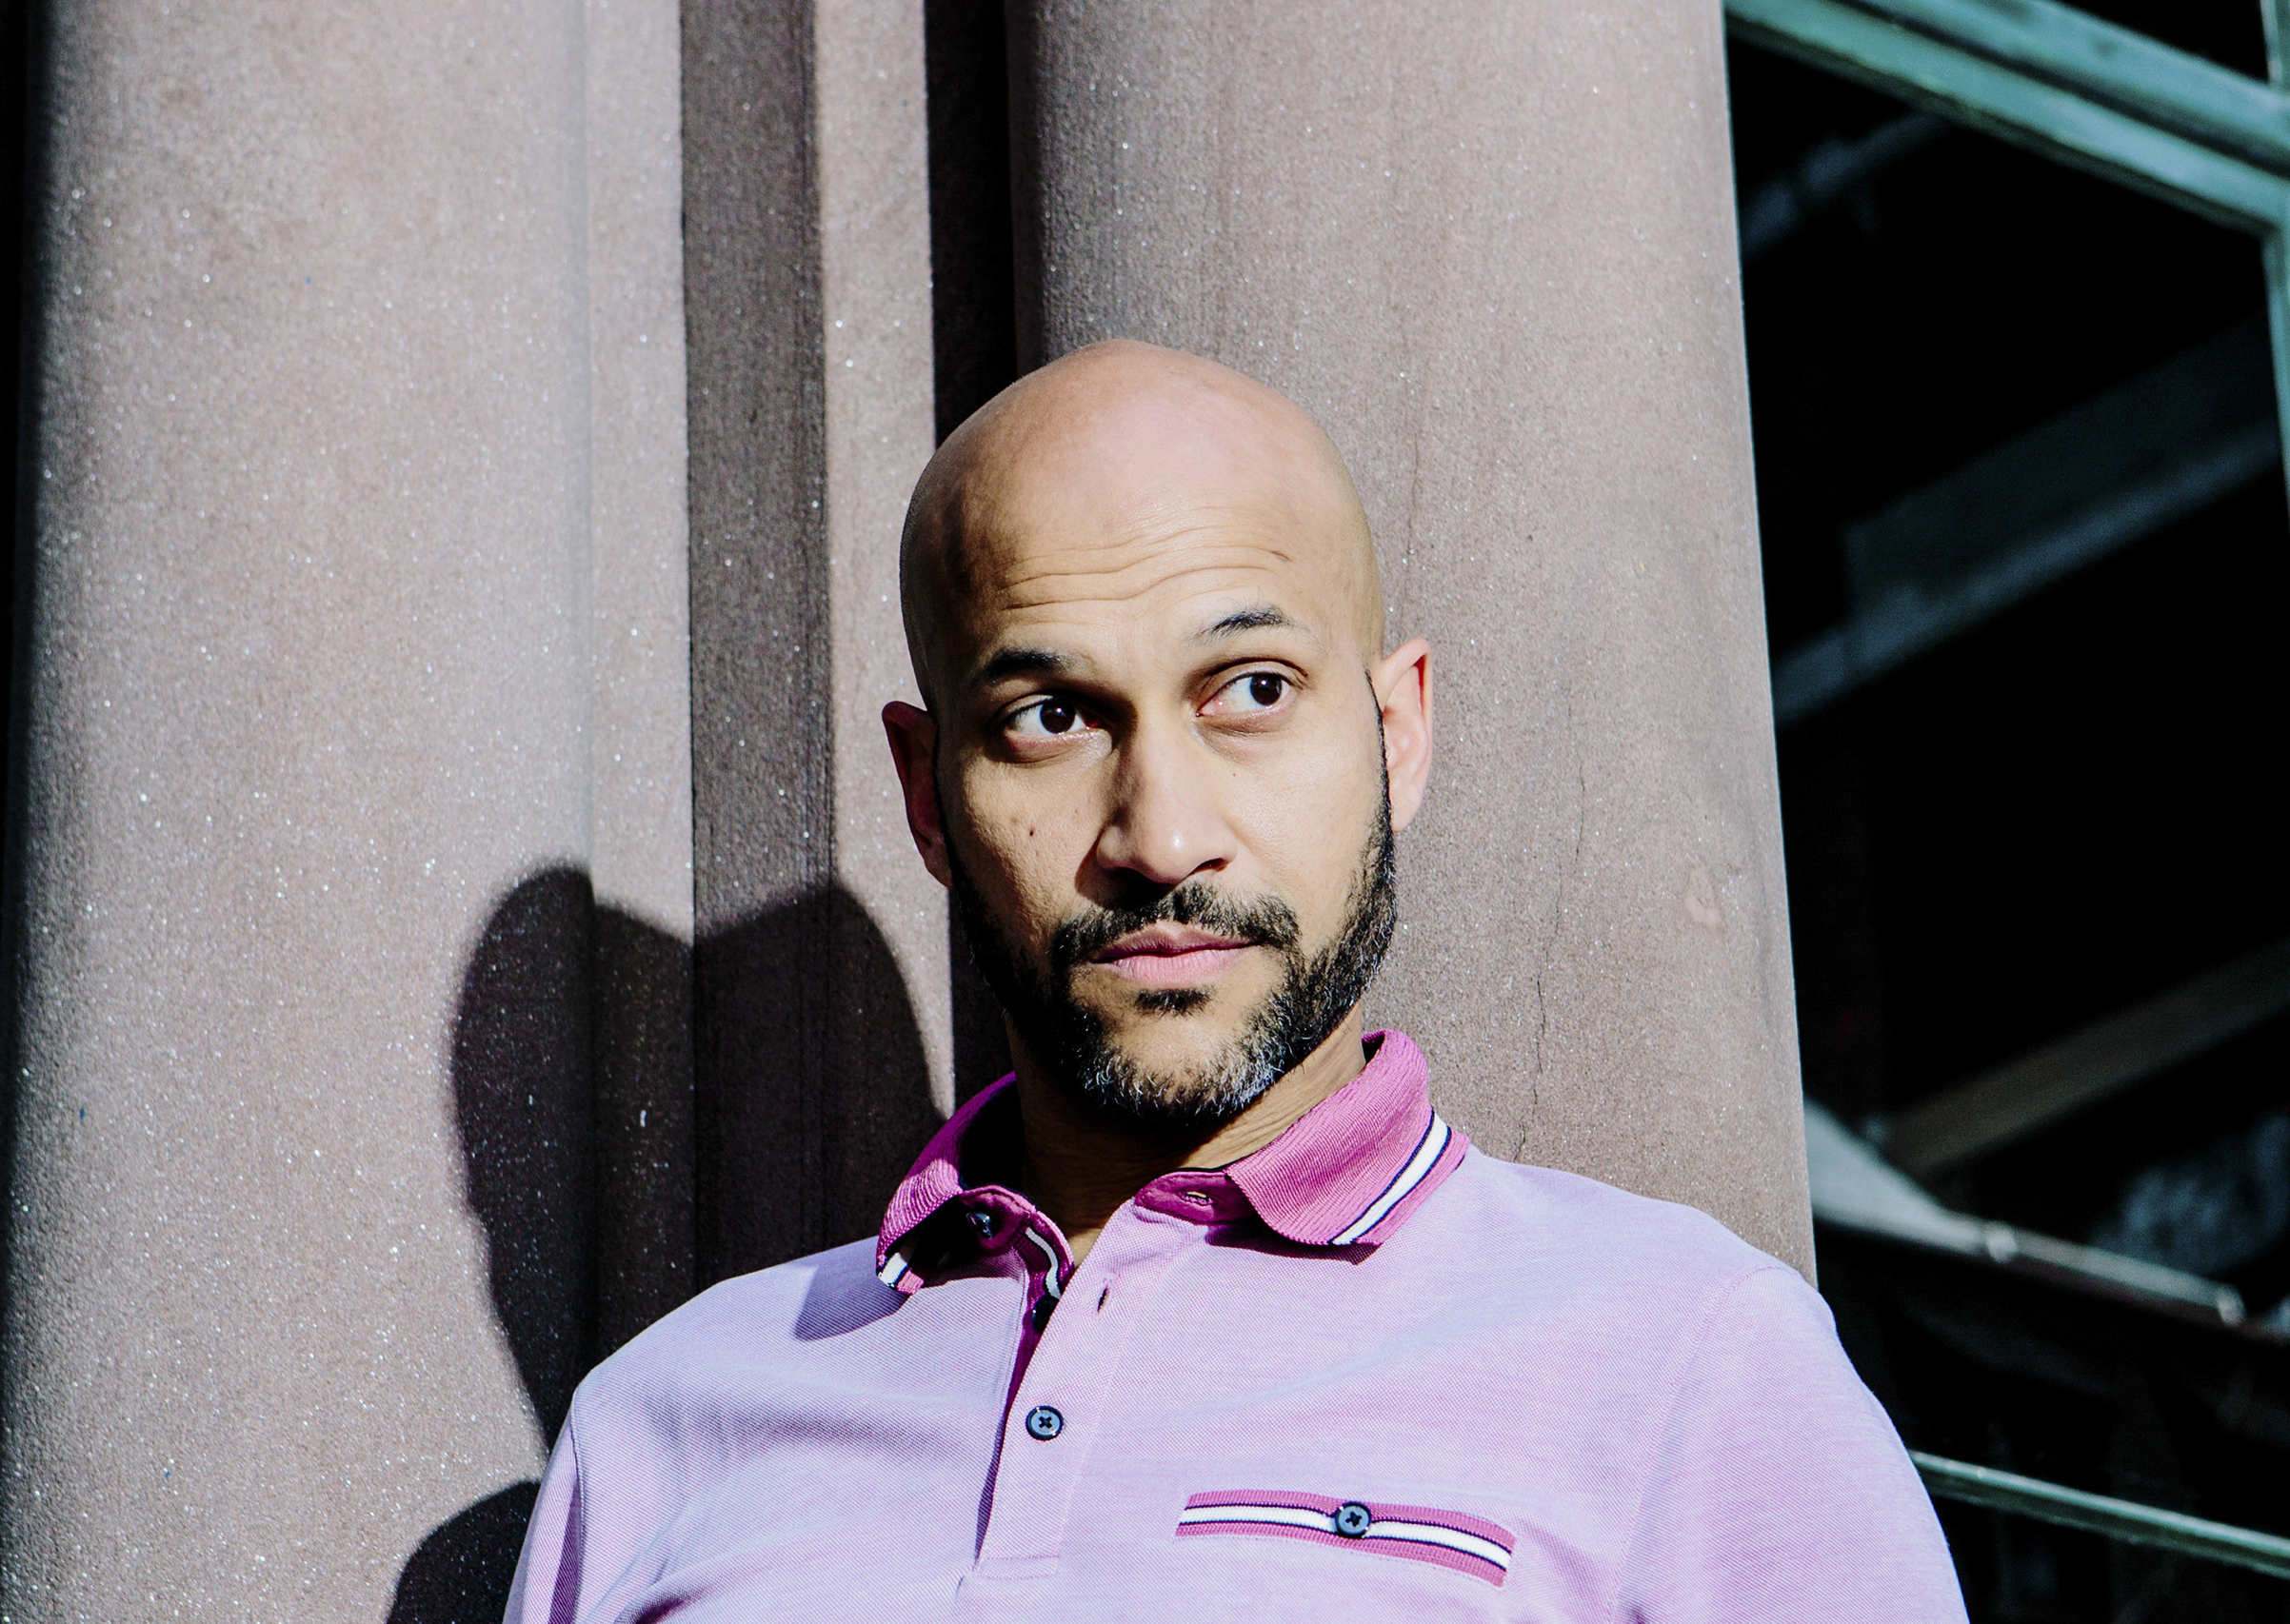 'It's time to retire the phrase detour. I'm evolving to see that it was meant to be.' - Keegan-Michael Key, on his unexpected path